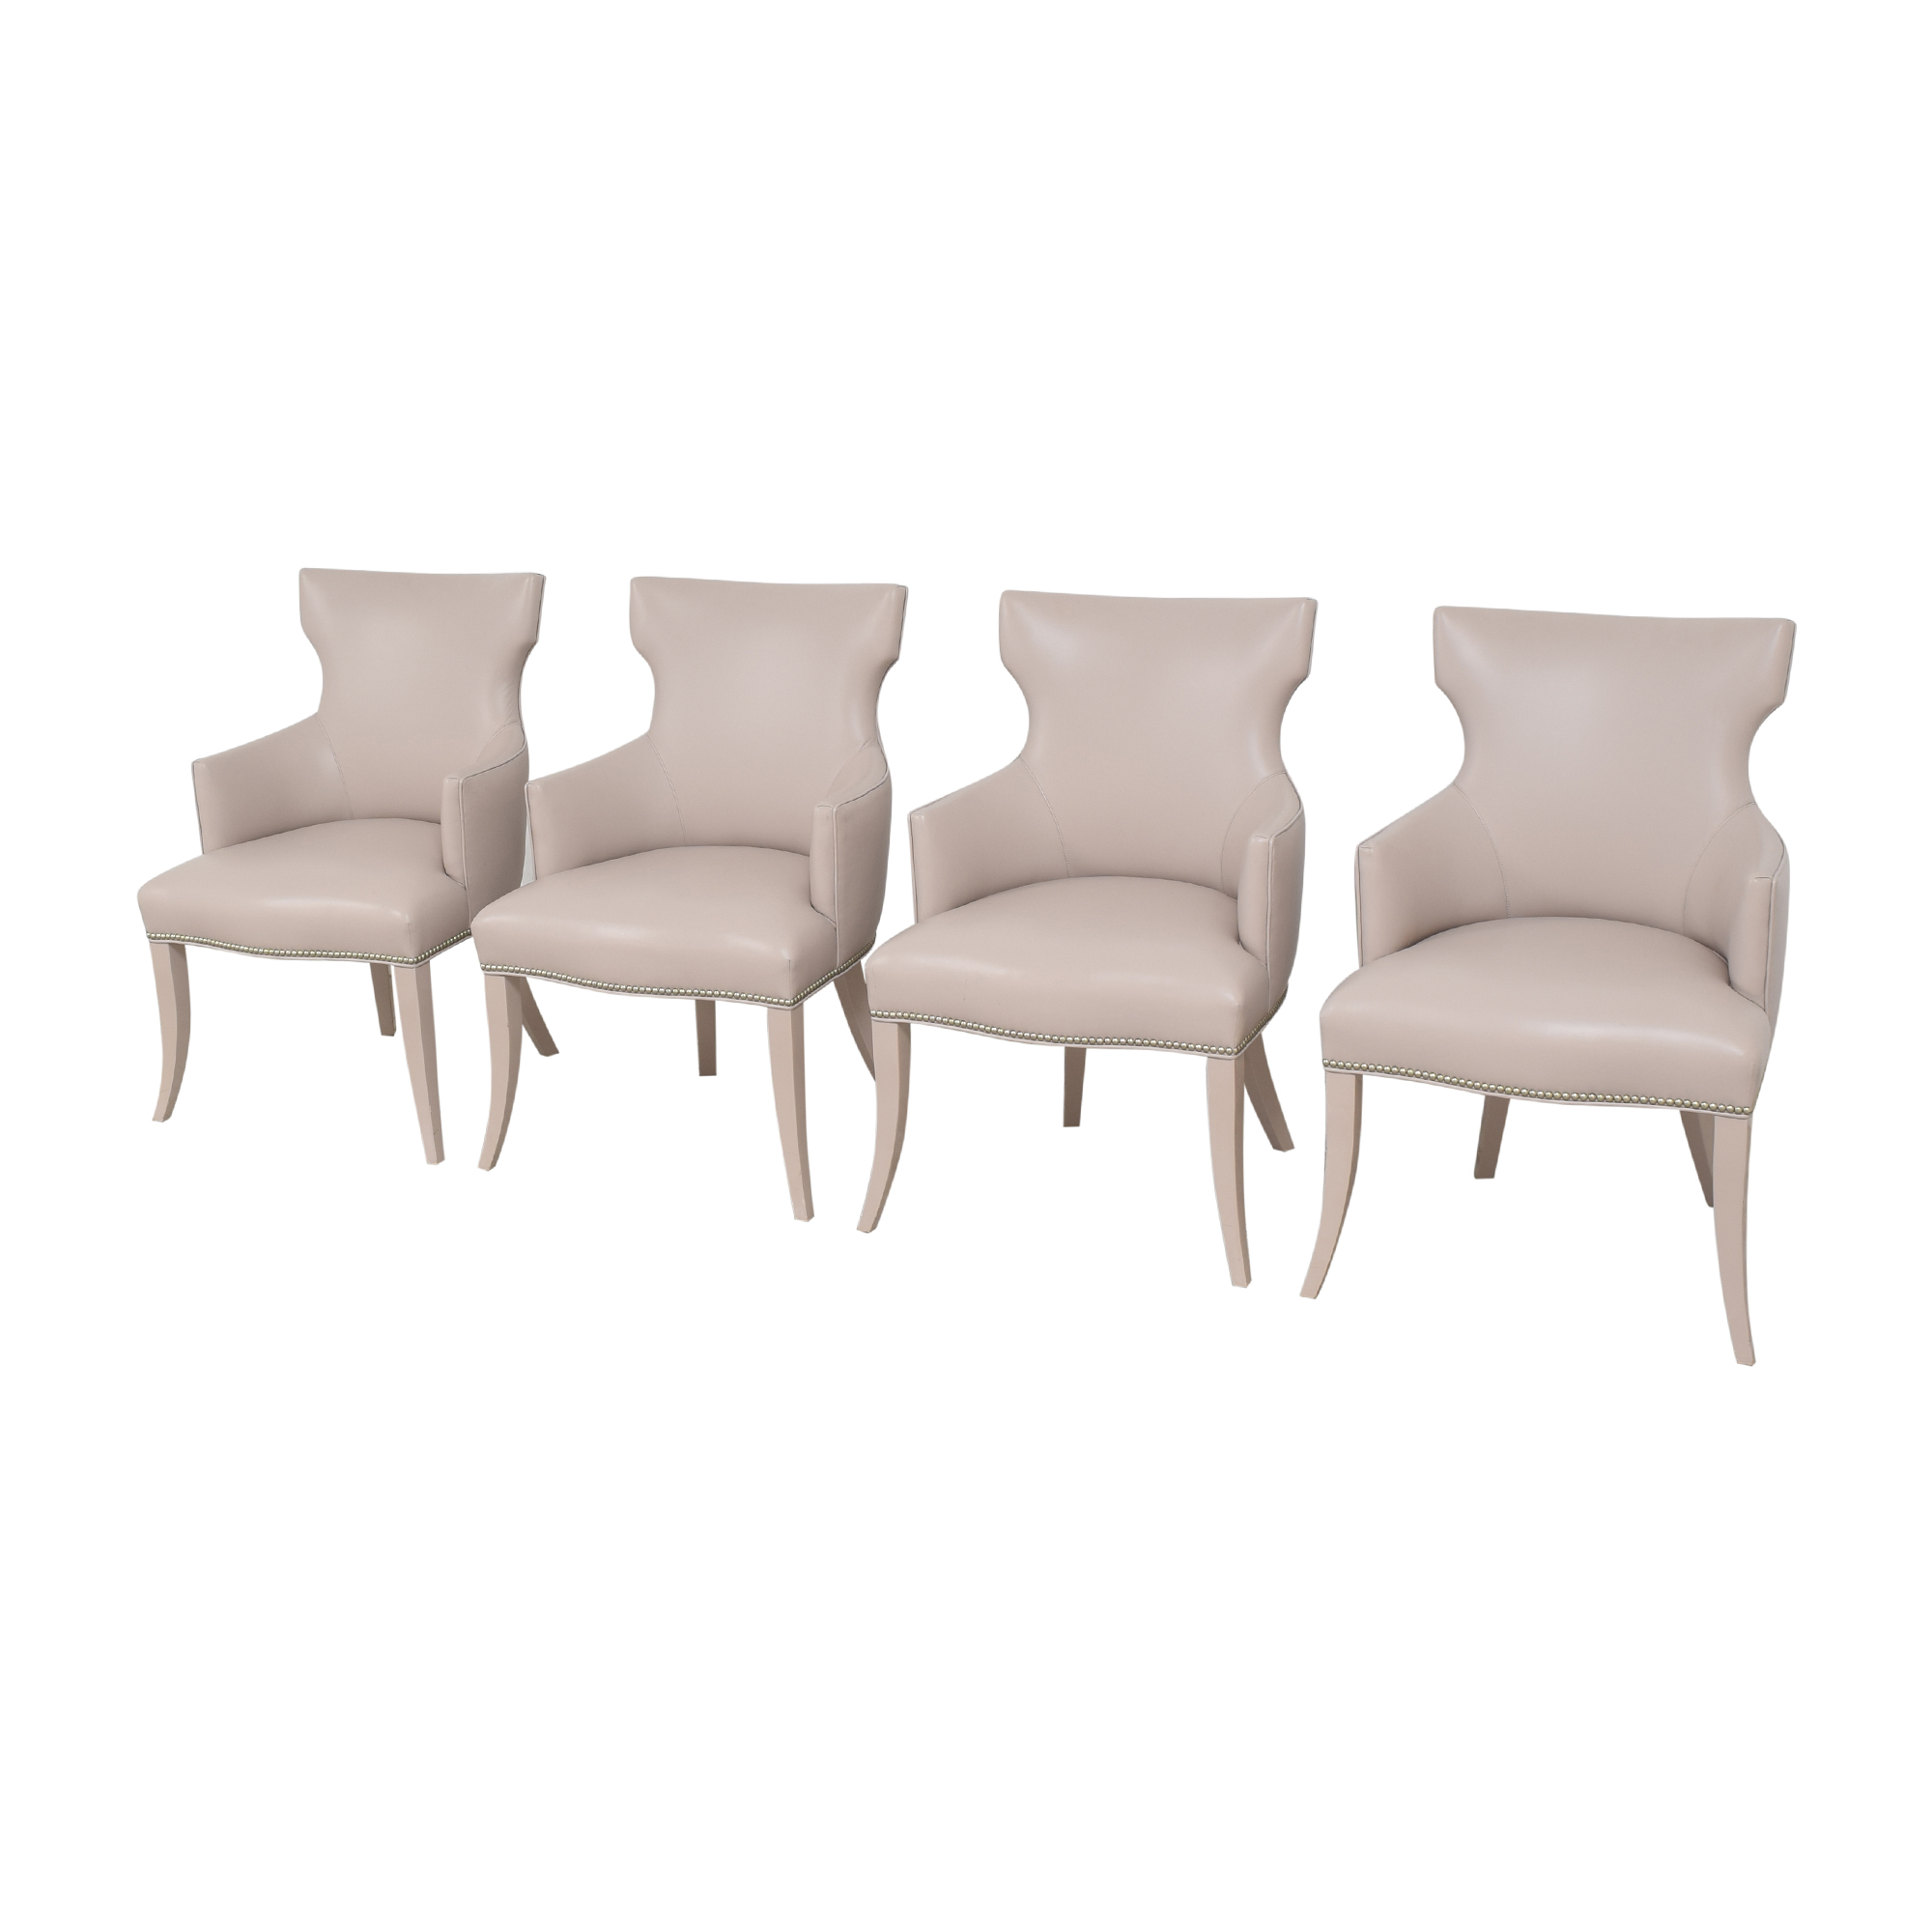 Artistic Frame Artistic Frame Custom Wing Back Dining Chairs coupon